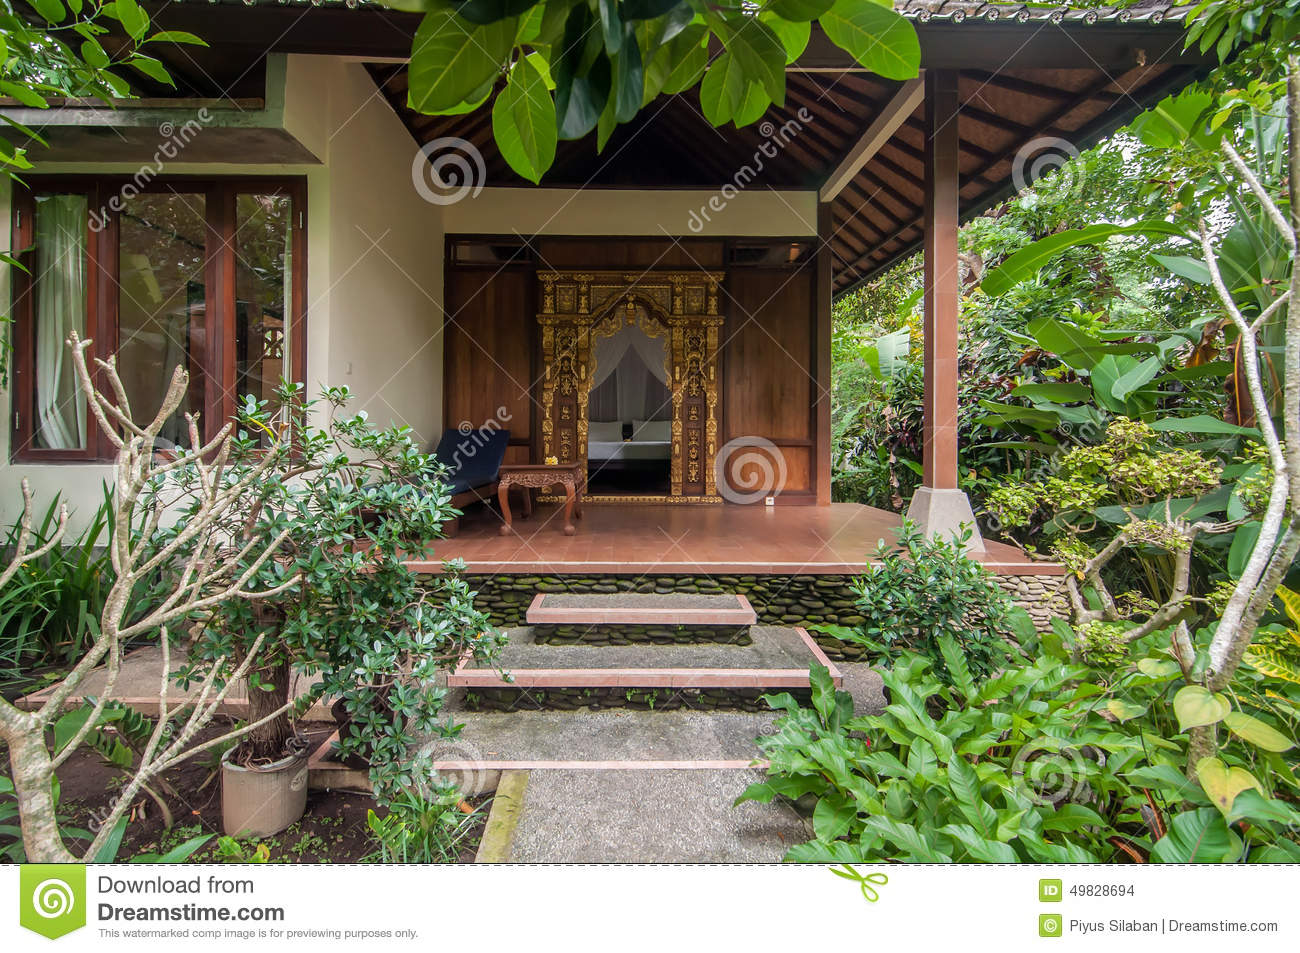 Beautiful Garden Villa Hotel Stock Photo - Image of resort, plant ...